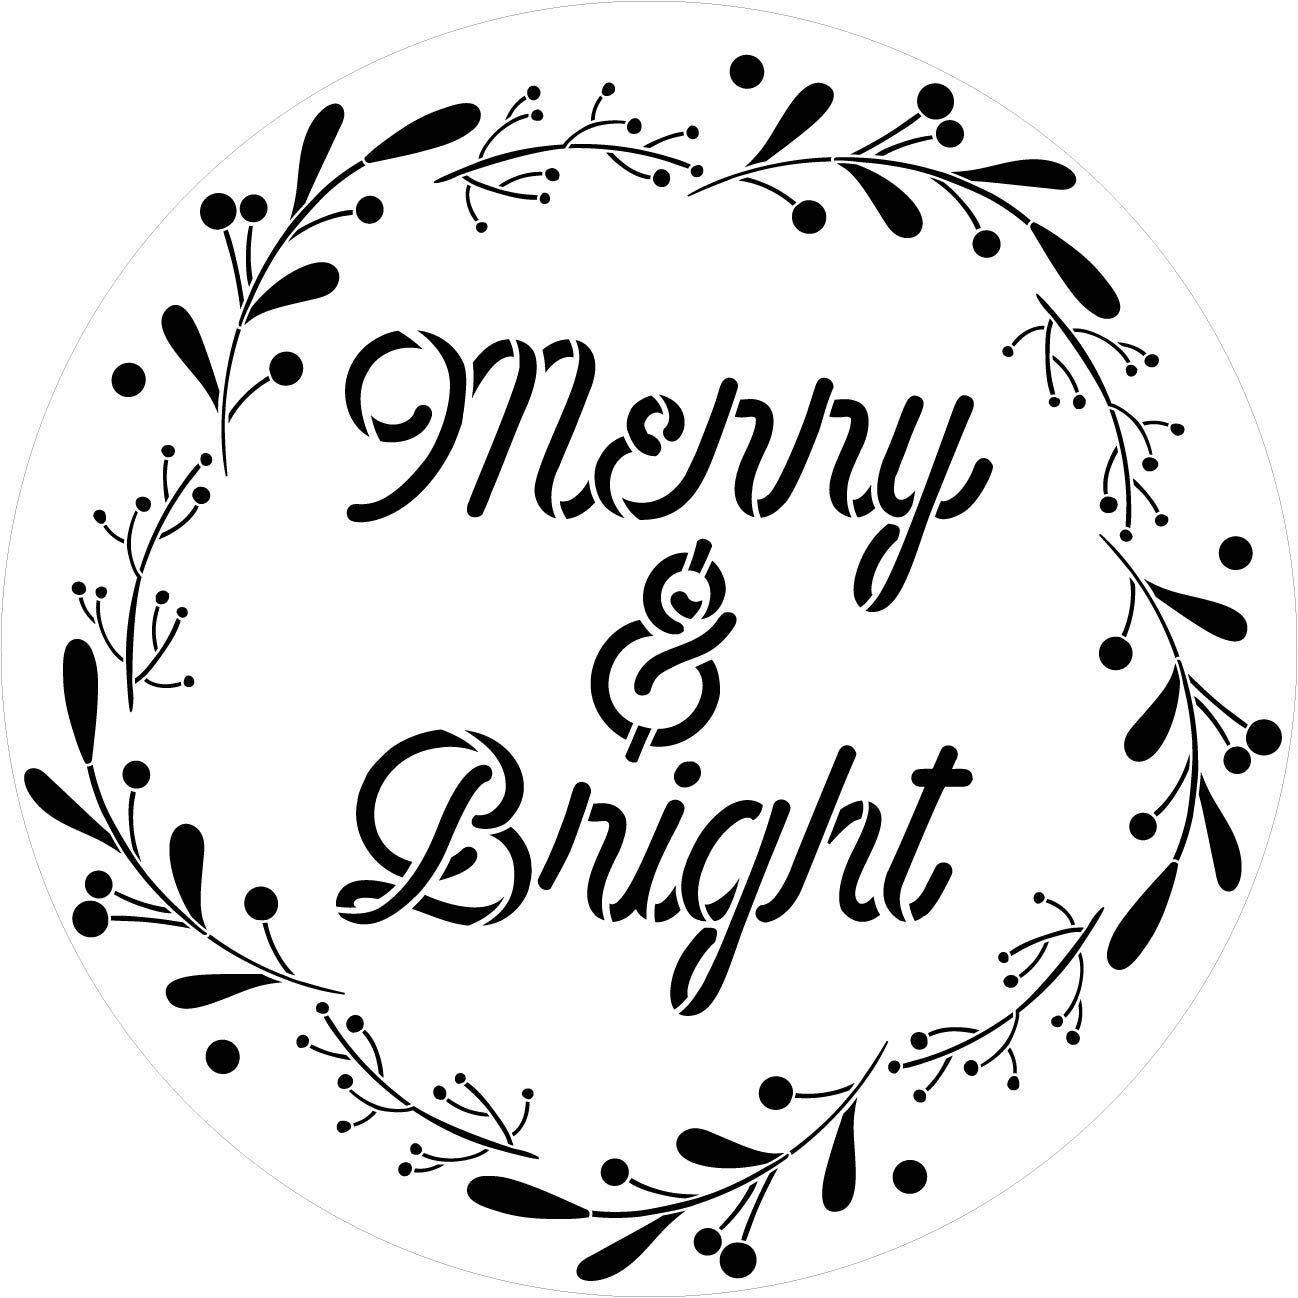 Merry & Bright Stencil with Wreath by StudioR12 | DIY Circle Script Christmas Home Decor | Craft & Paint Cursive Rustic Holiday Wood Signs | Reusable Mylar Template | Select Size